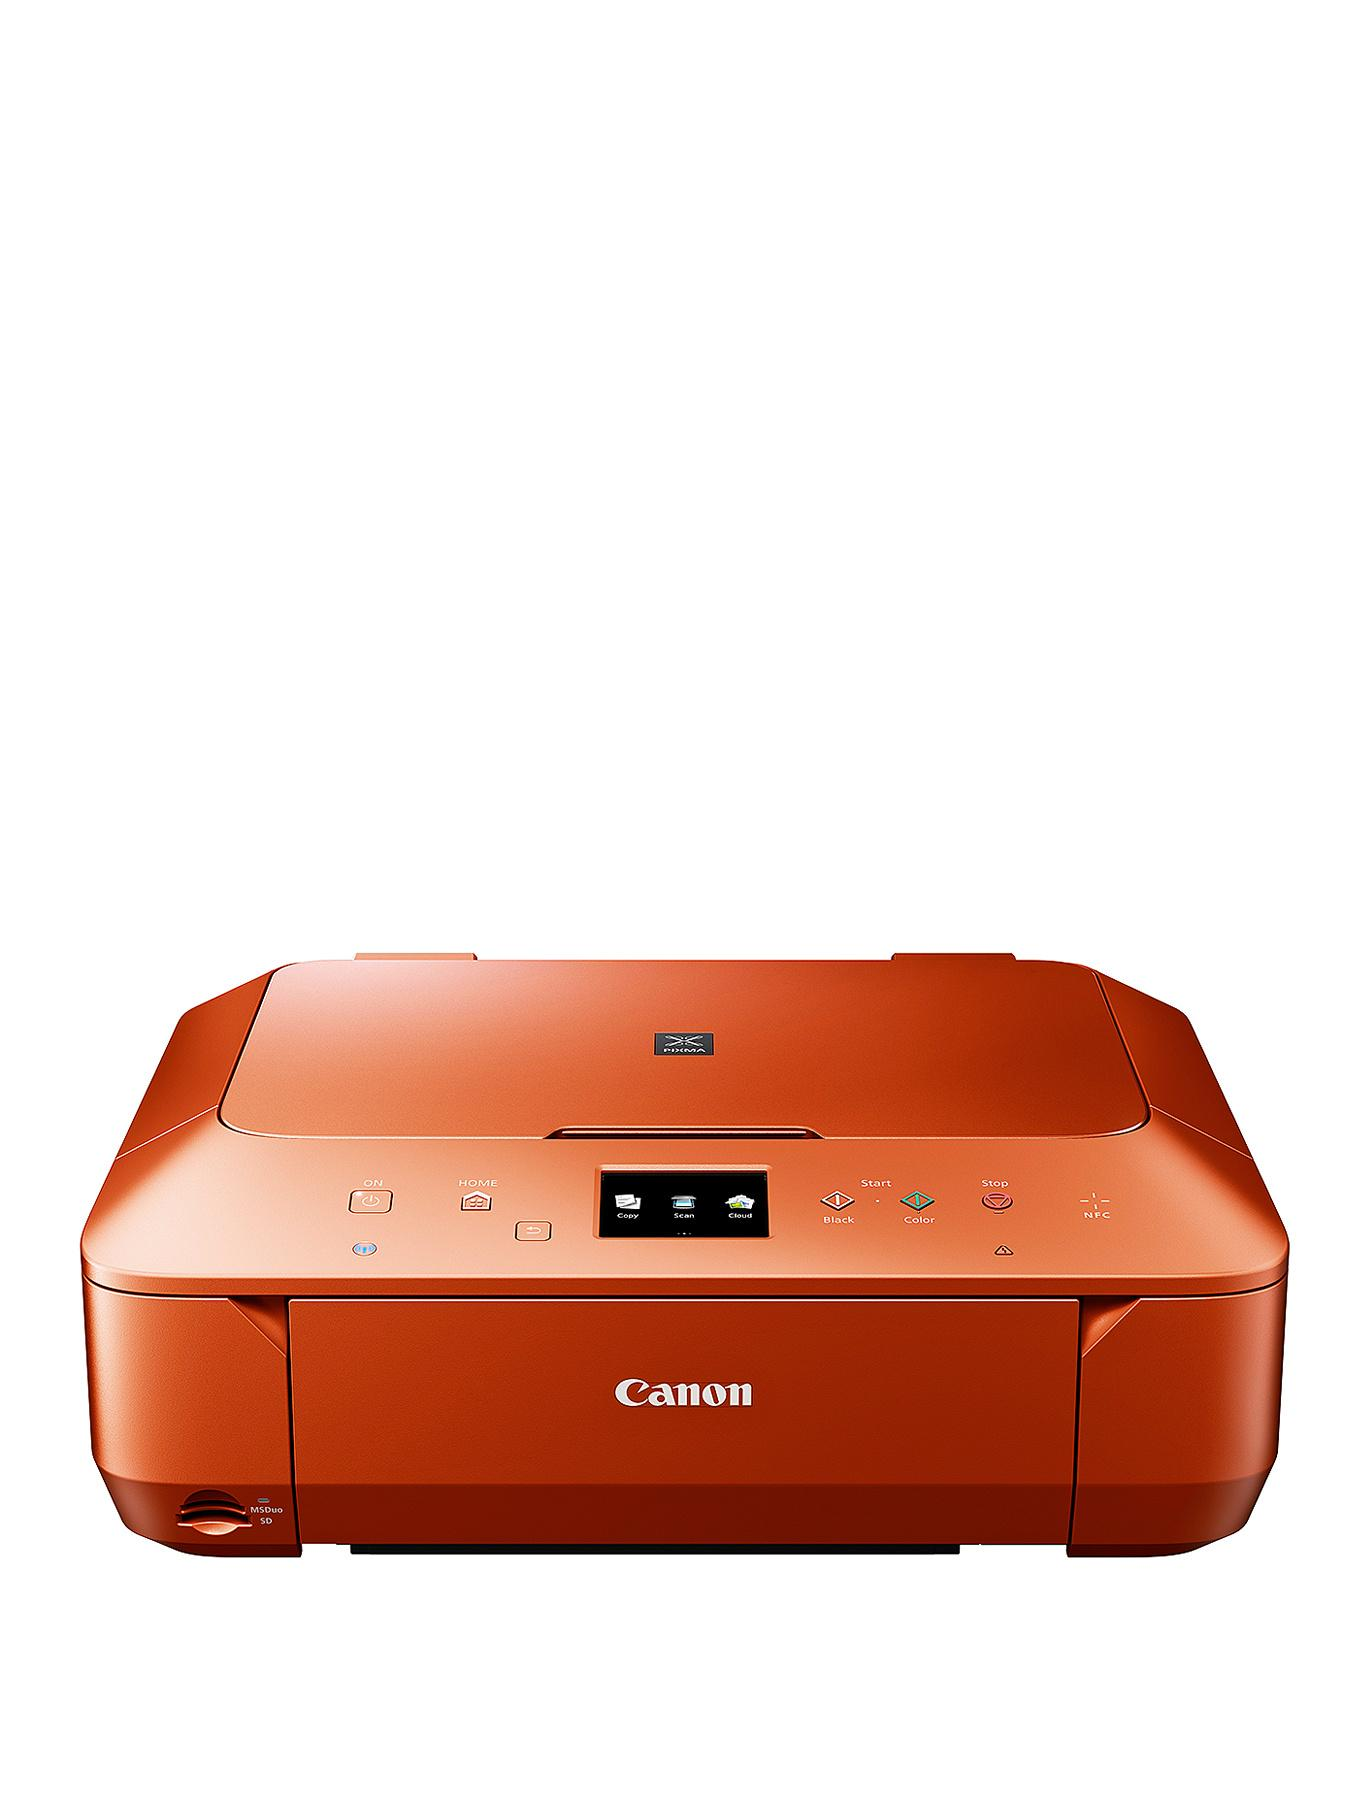 Canon Pixma MG6650 All in One Printer- Burnt Orange